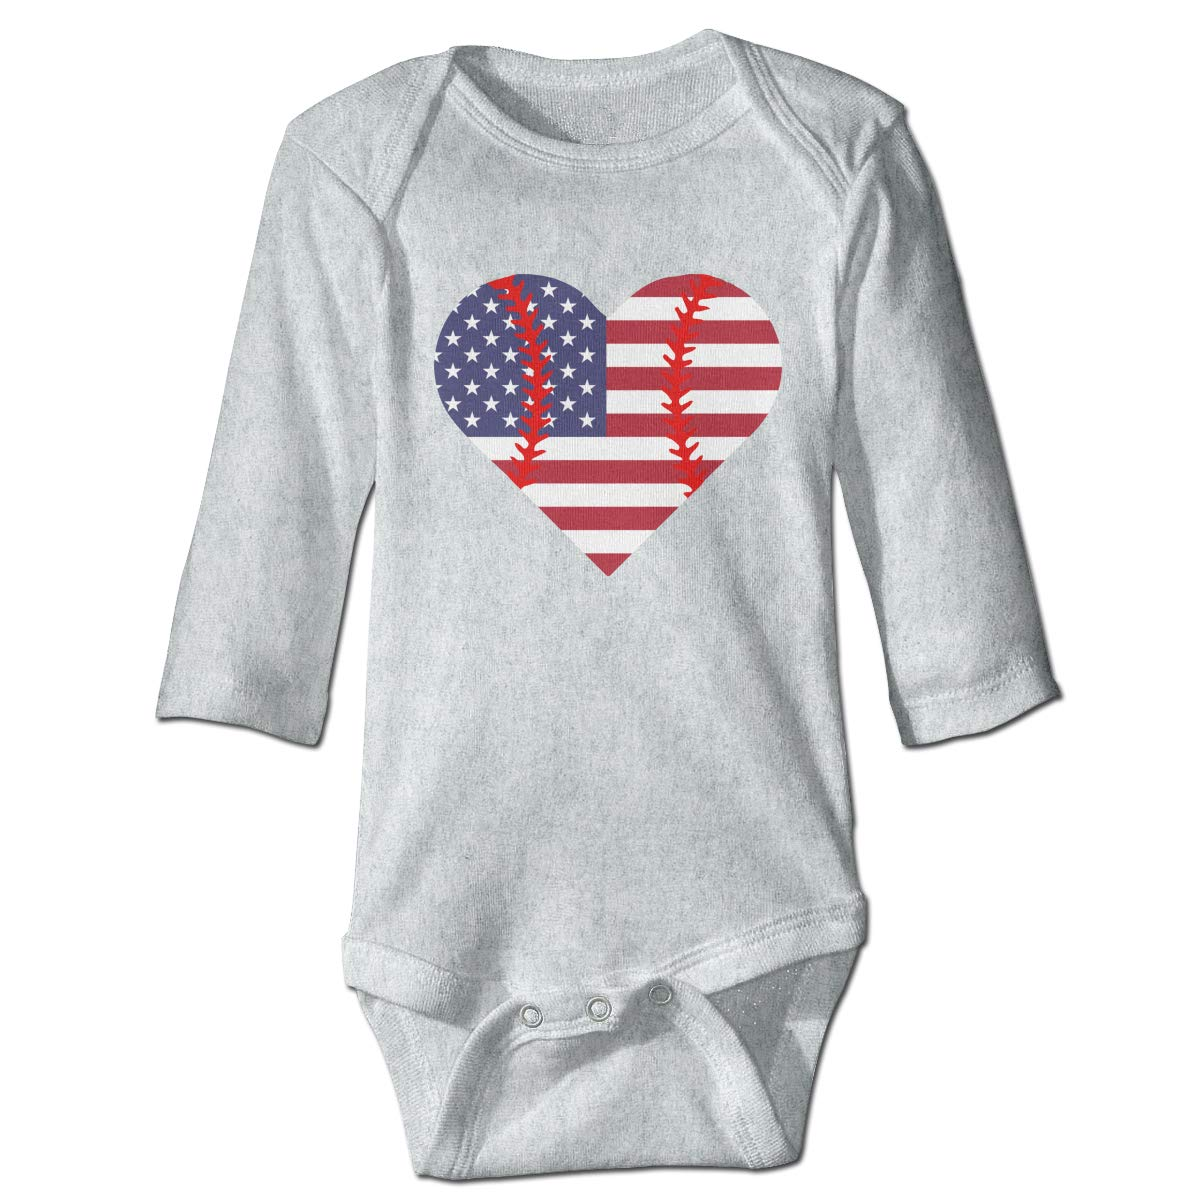 A14UBP Infant Babys Long Sleeve Jumpsuit Romper American Flag Baseball Heart Unisex Button Playsuit Outfit Clothes